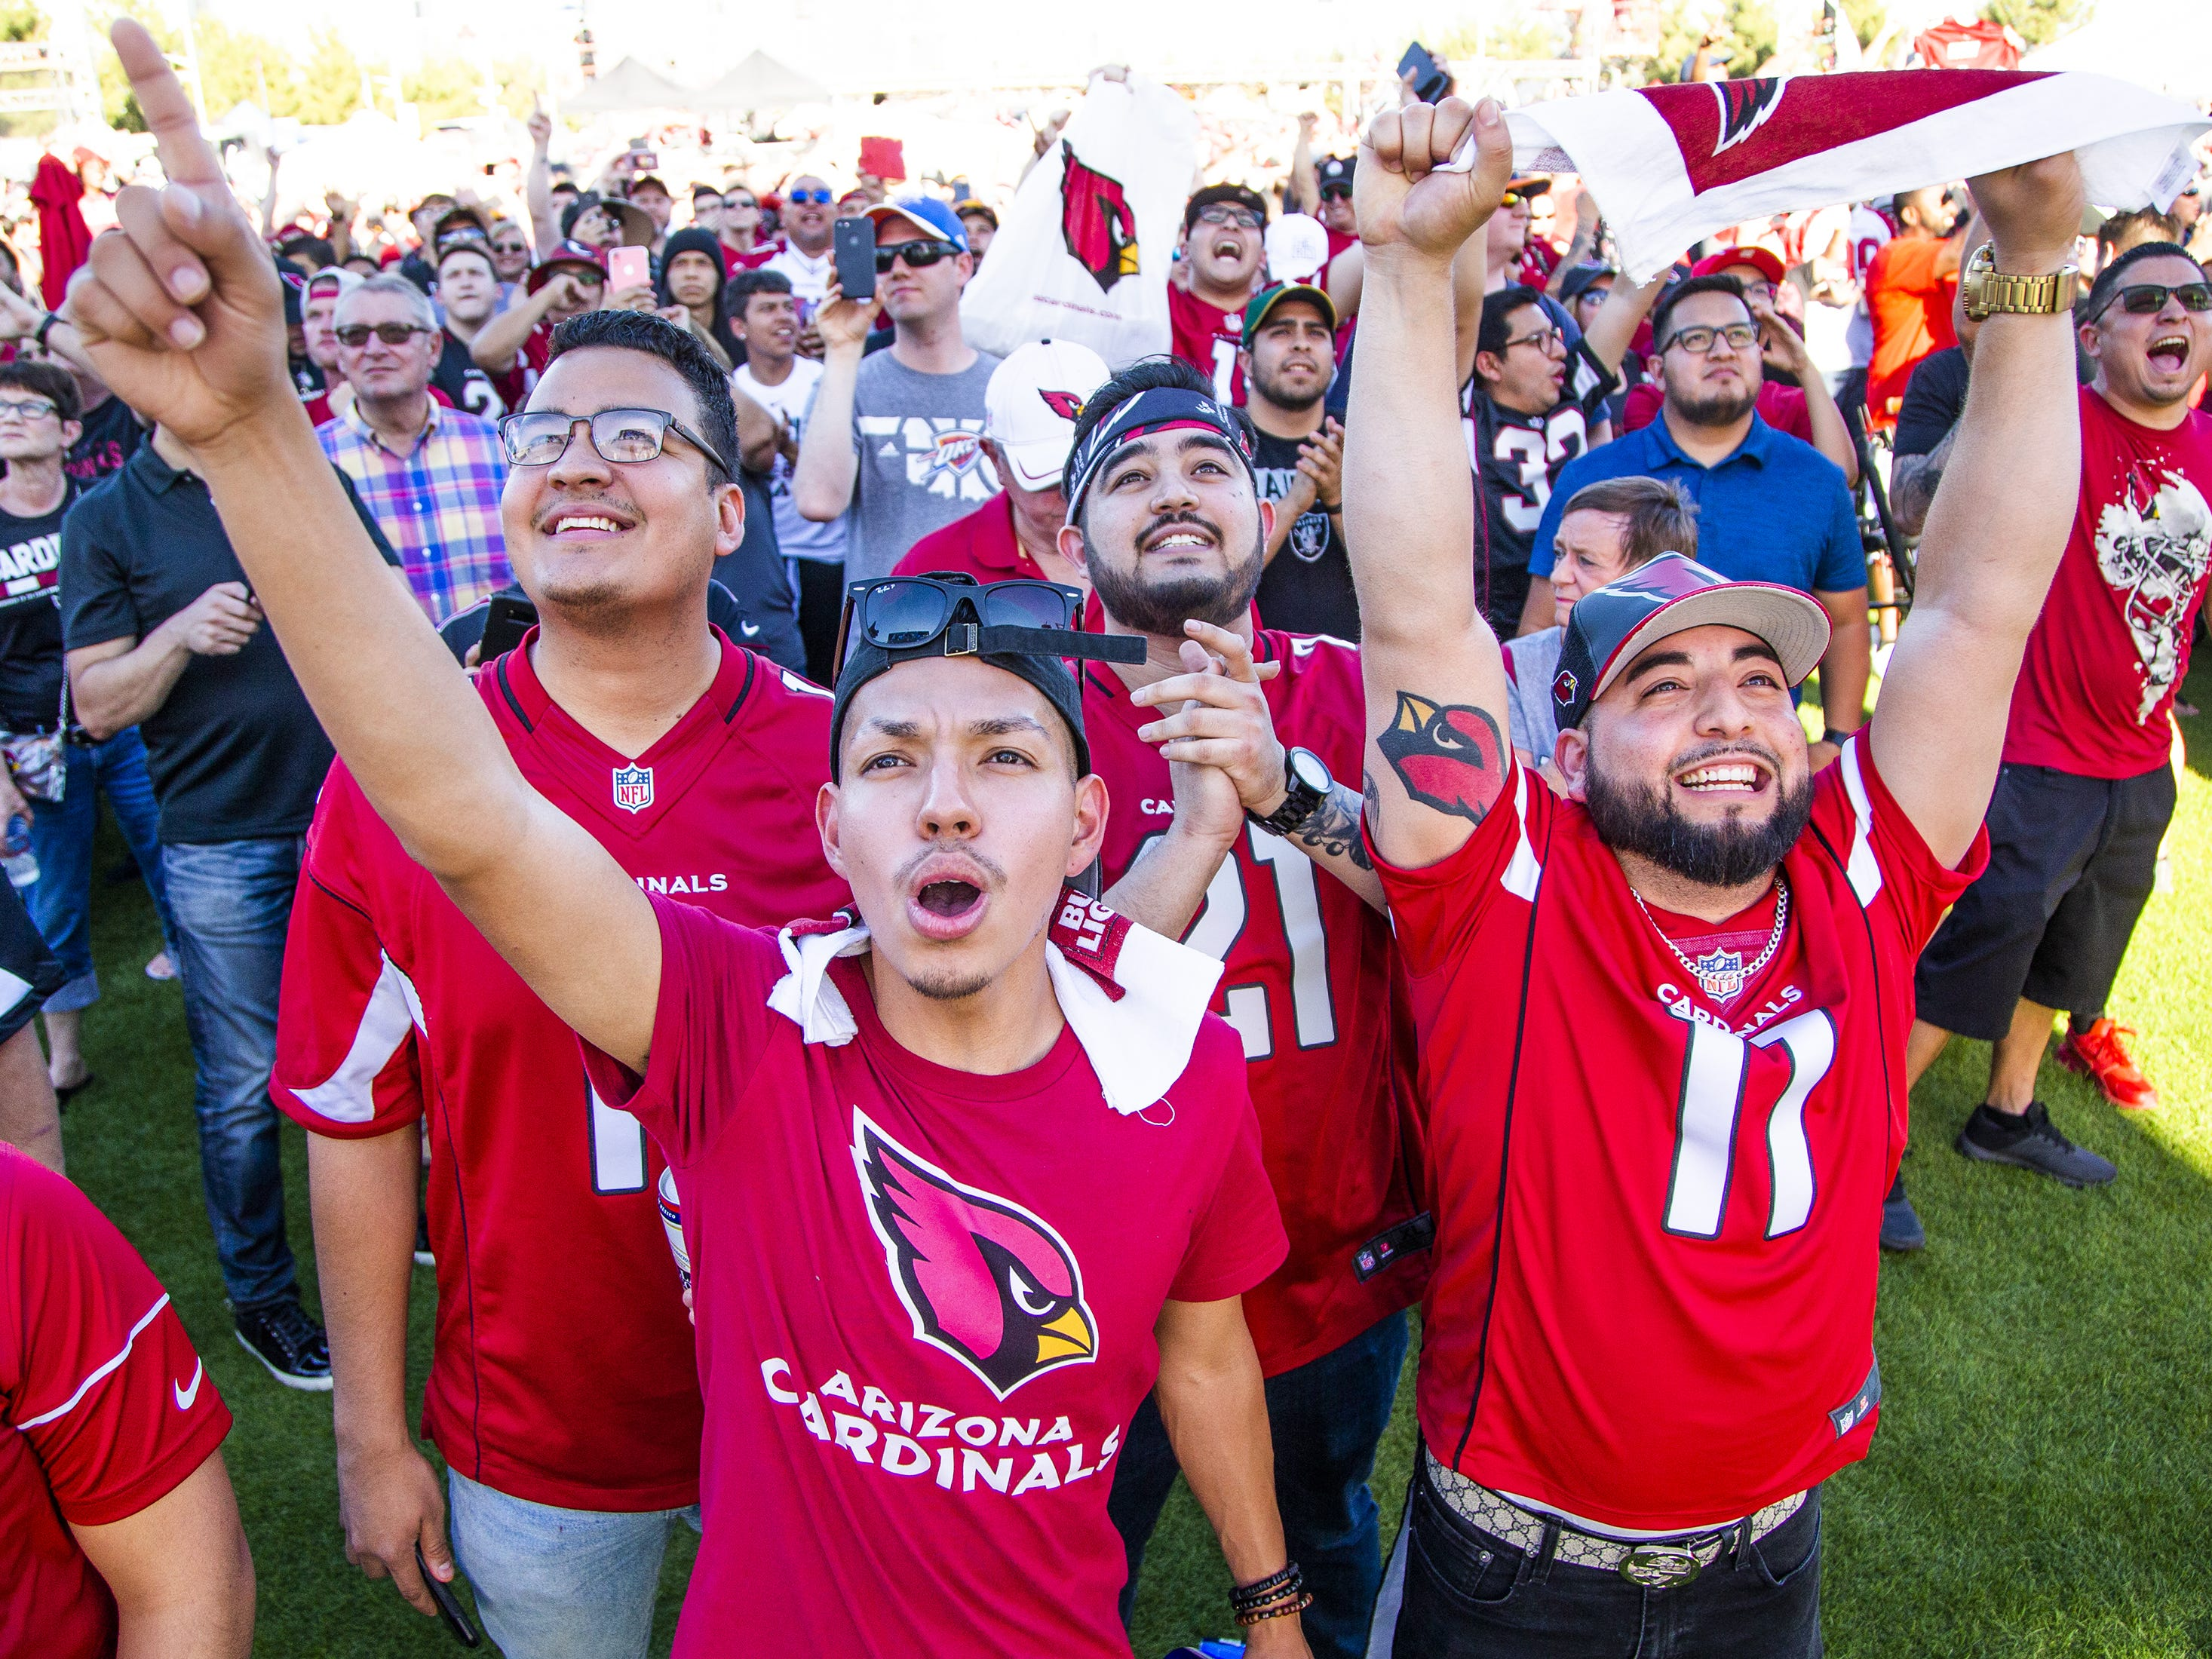 Efren Hernandez, left, Javier Salas, Jesus Cano, and Jesus Quezada, cheer as the Arizona Cardinals make their first pick in the NFL Draft. The fans watched a live feed during a draft party on the Great Lawn outside State Farm Stadium, Thursday, April 25, 2019.